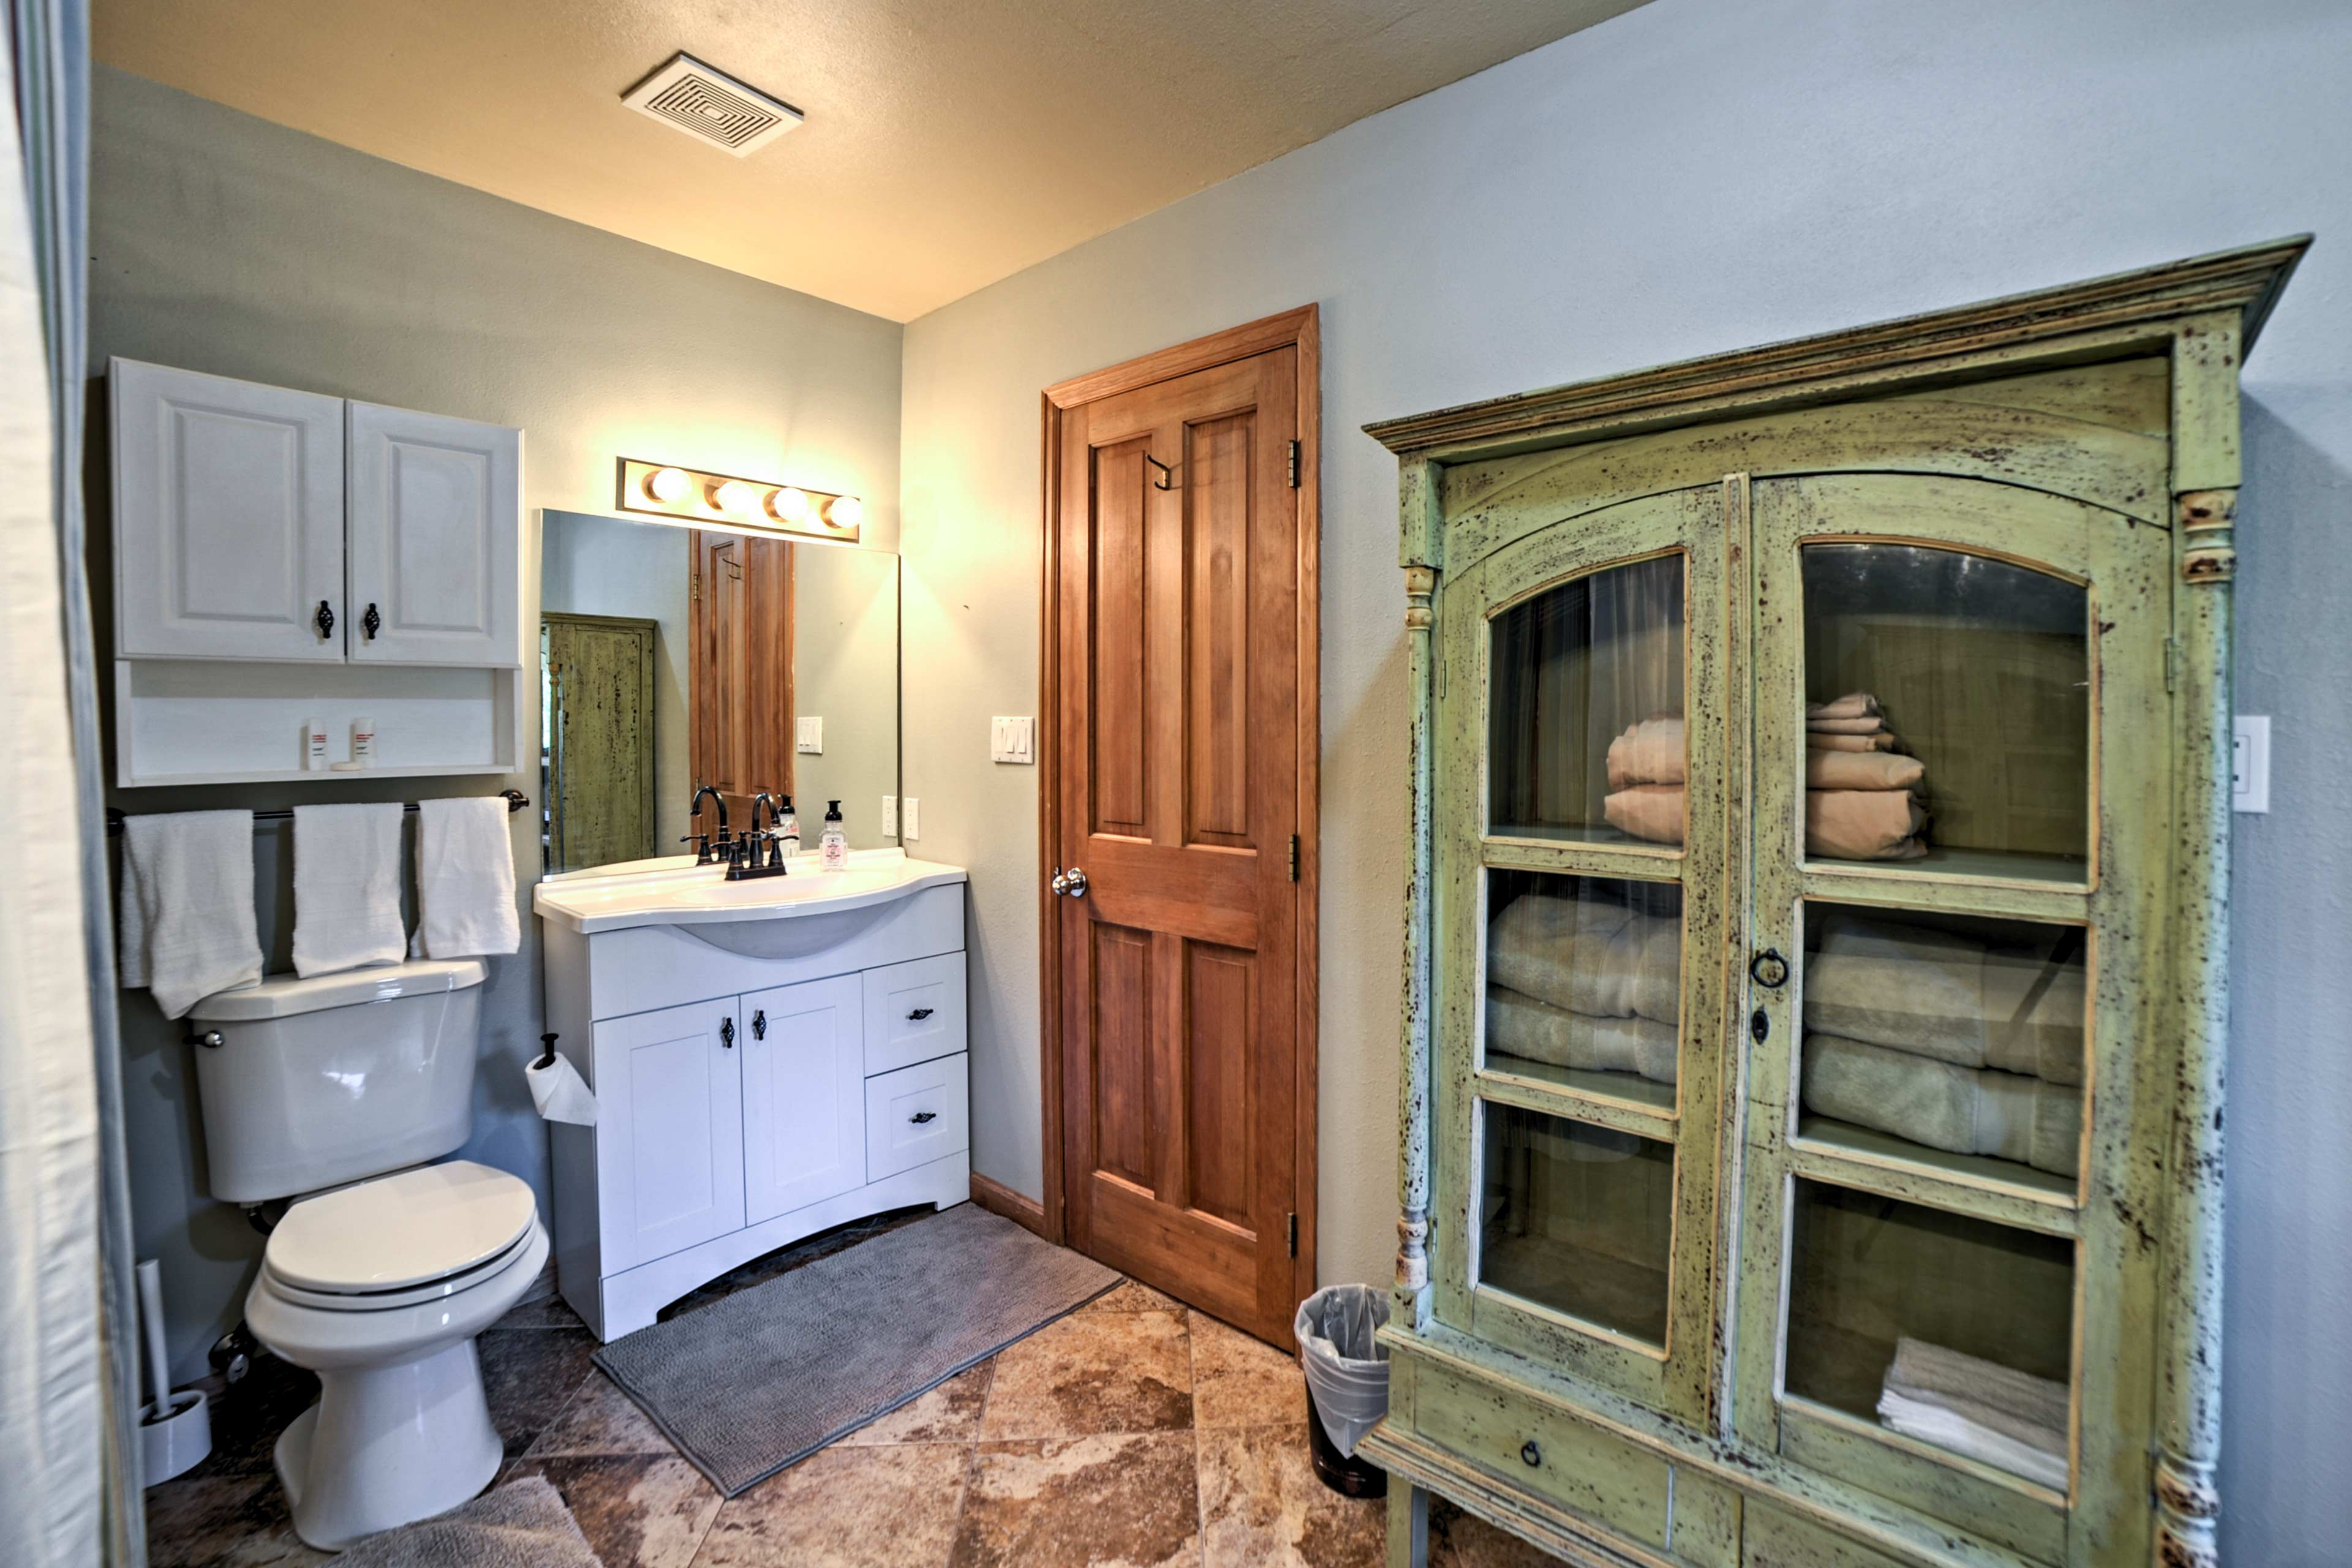 This full bathroom comes stocked with towels.